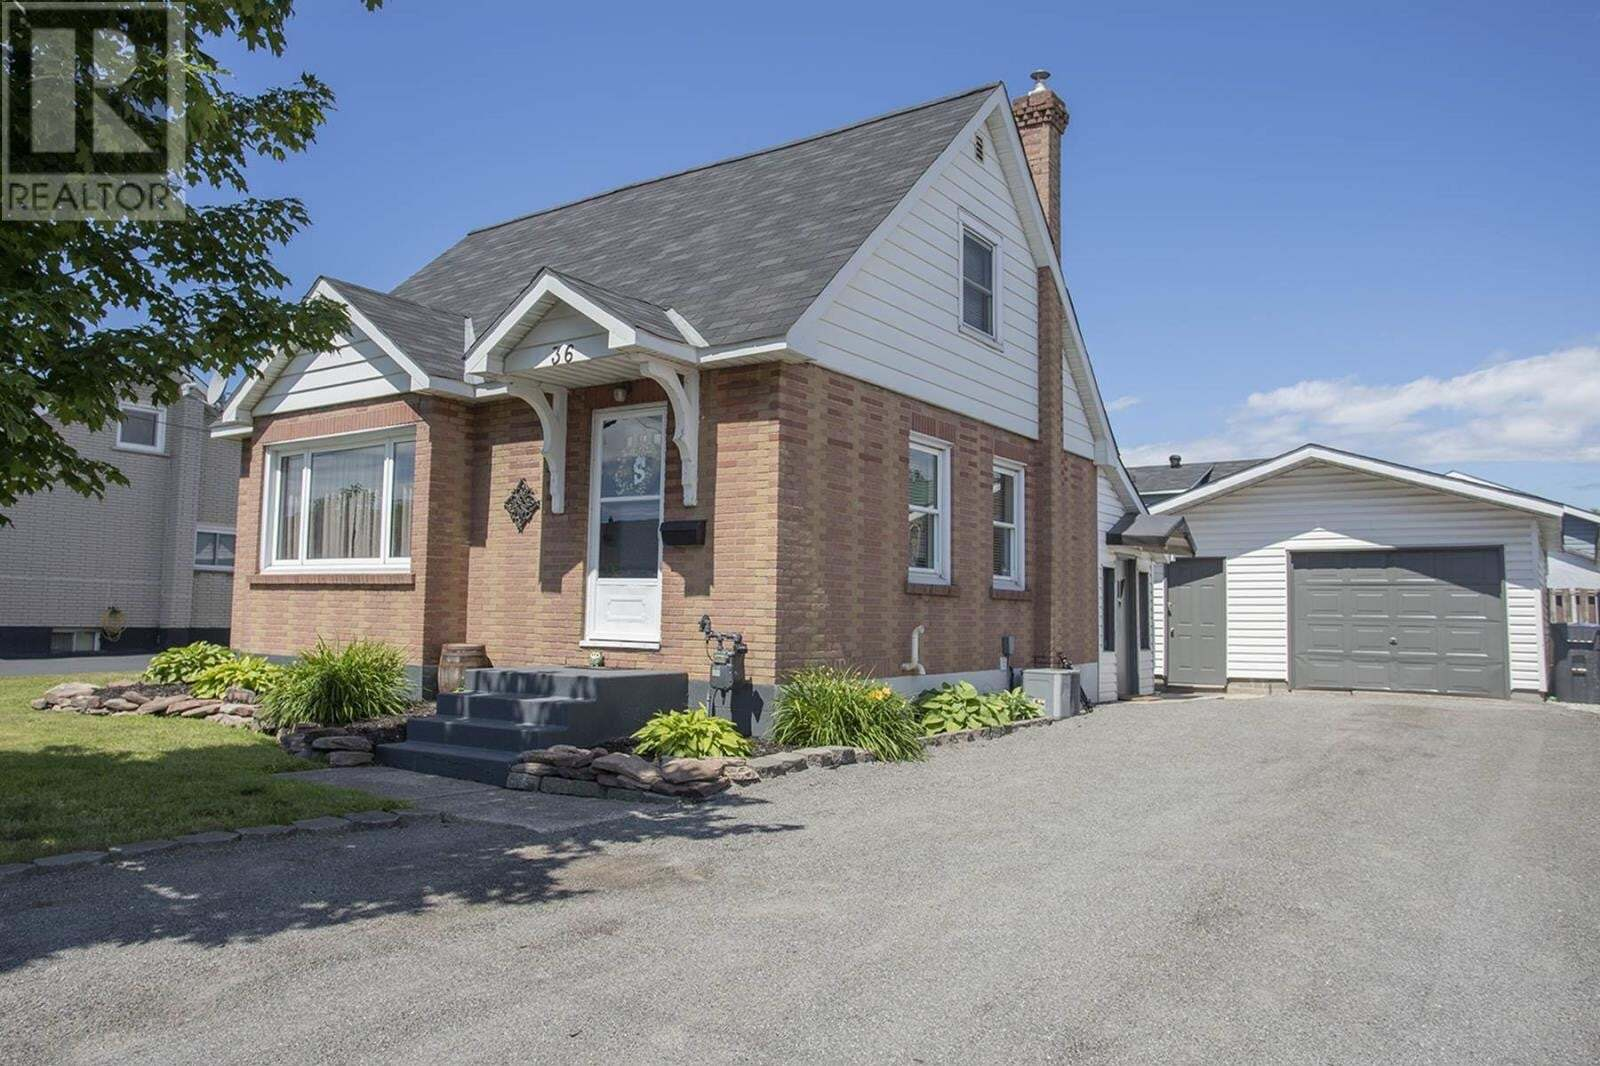 House for sale at 36 Hocking Ave Sault Ste. Marie Ontario - MLS: SM129396